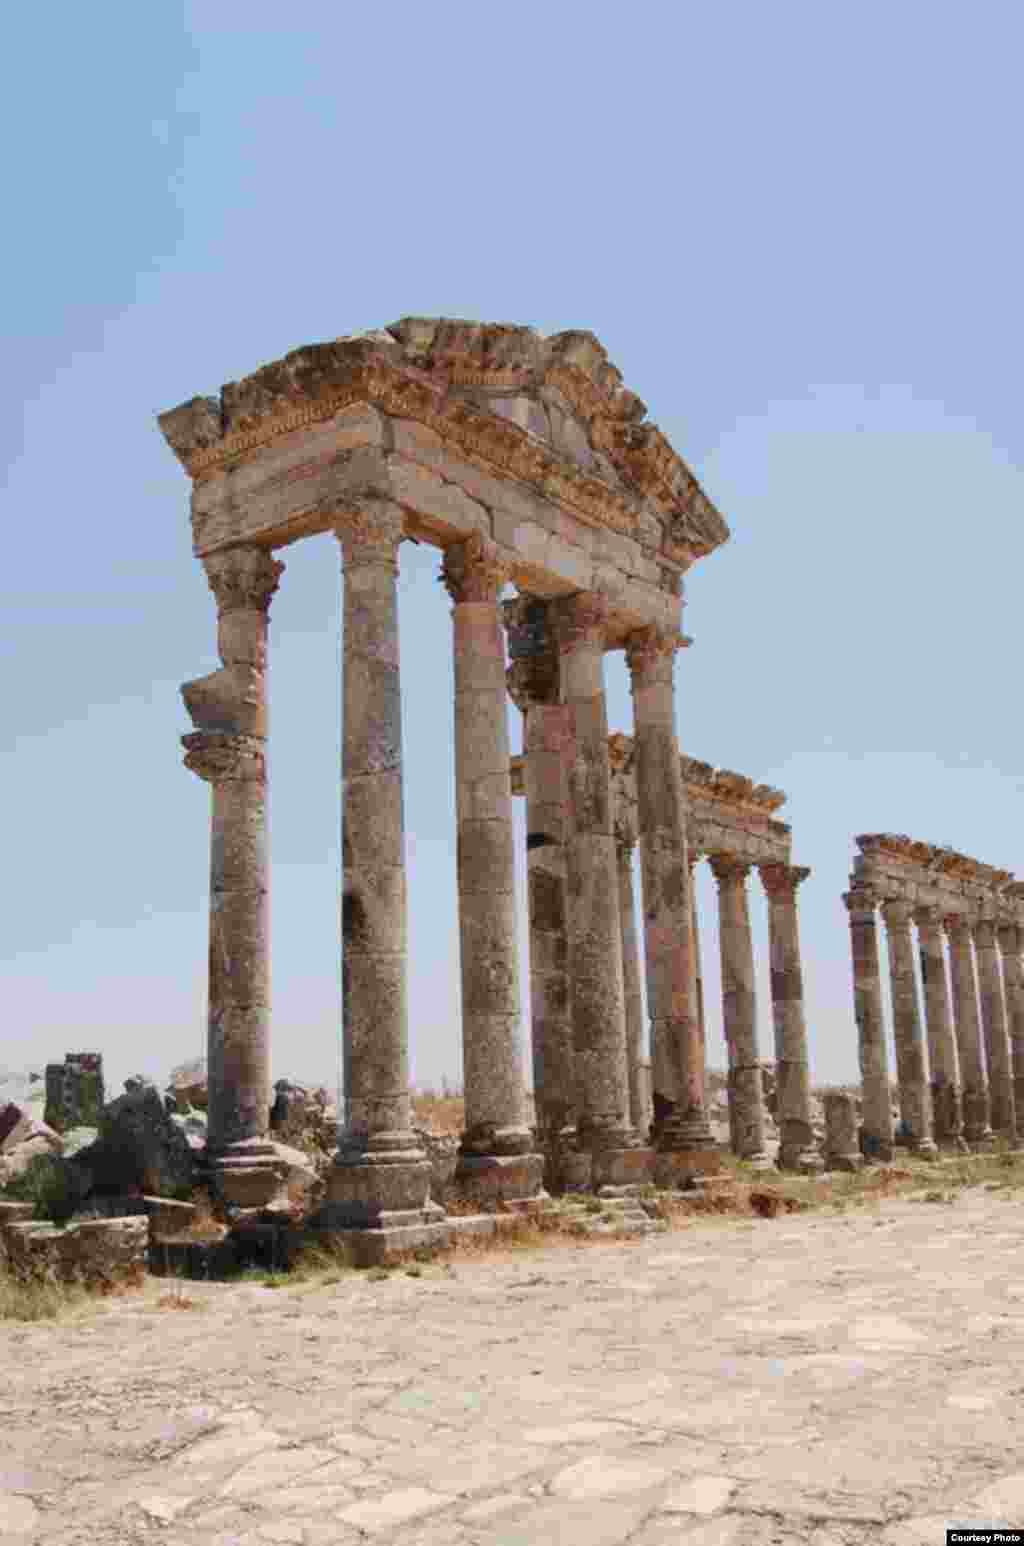 The façade of a structure among the Roman ruins of Apamea, a major trade center of the Middle East, photographed by Christian Sahner before the Syrian conflict began.